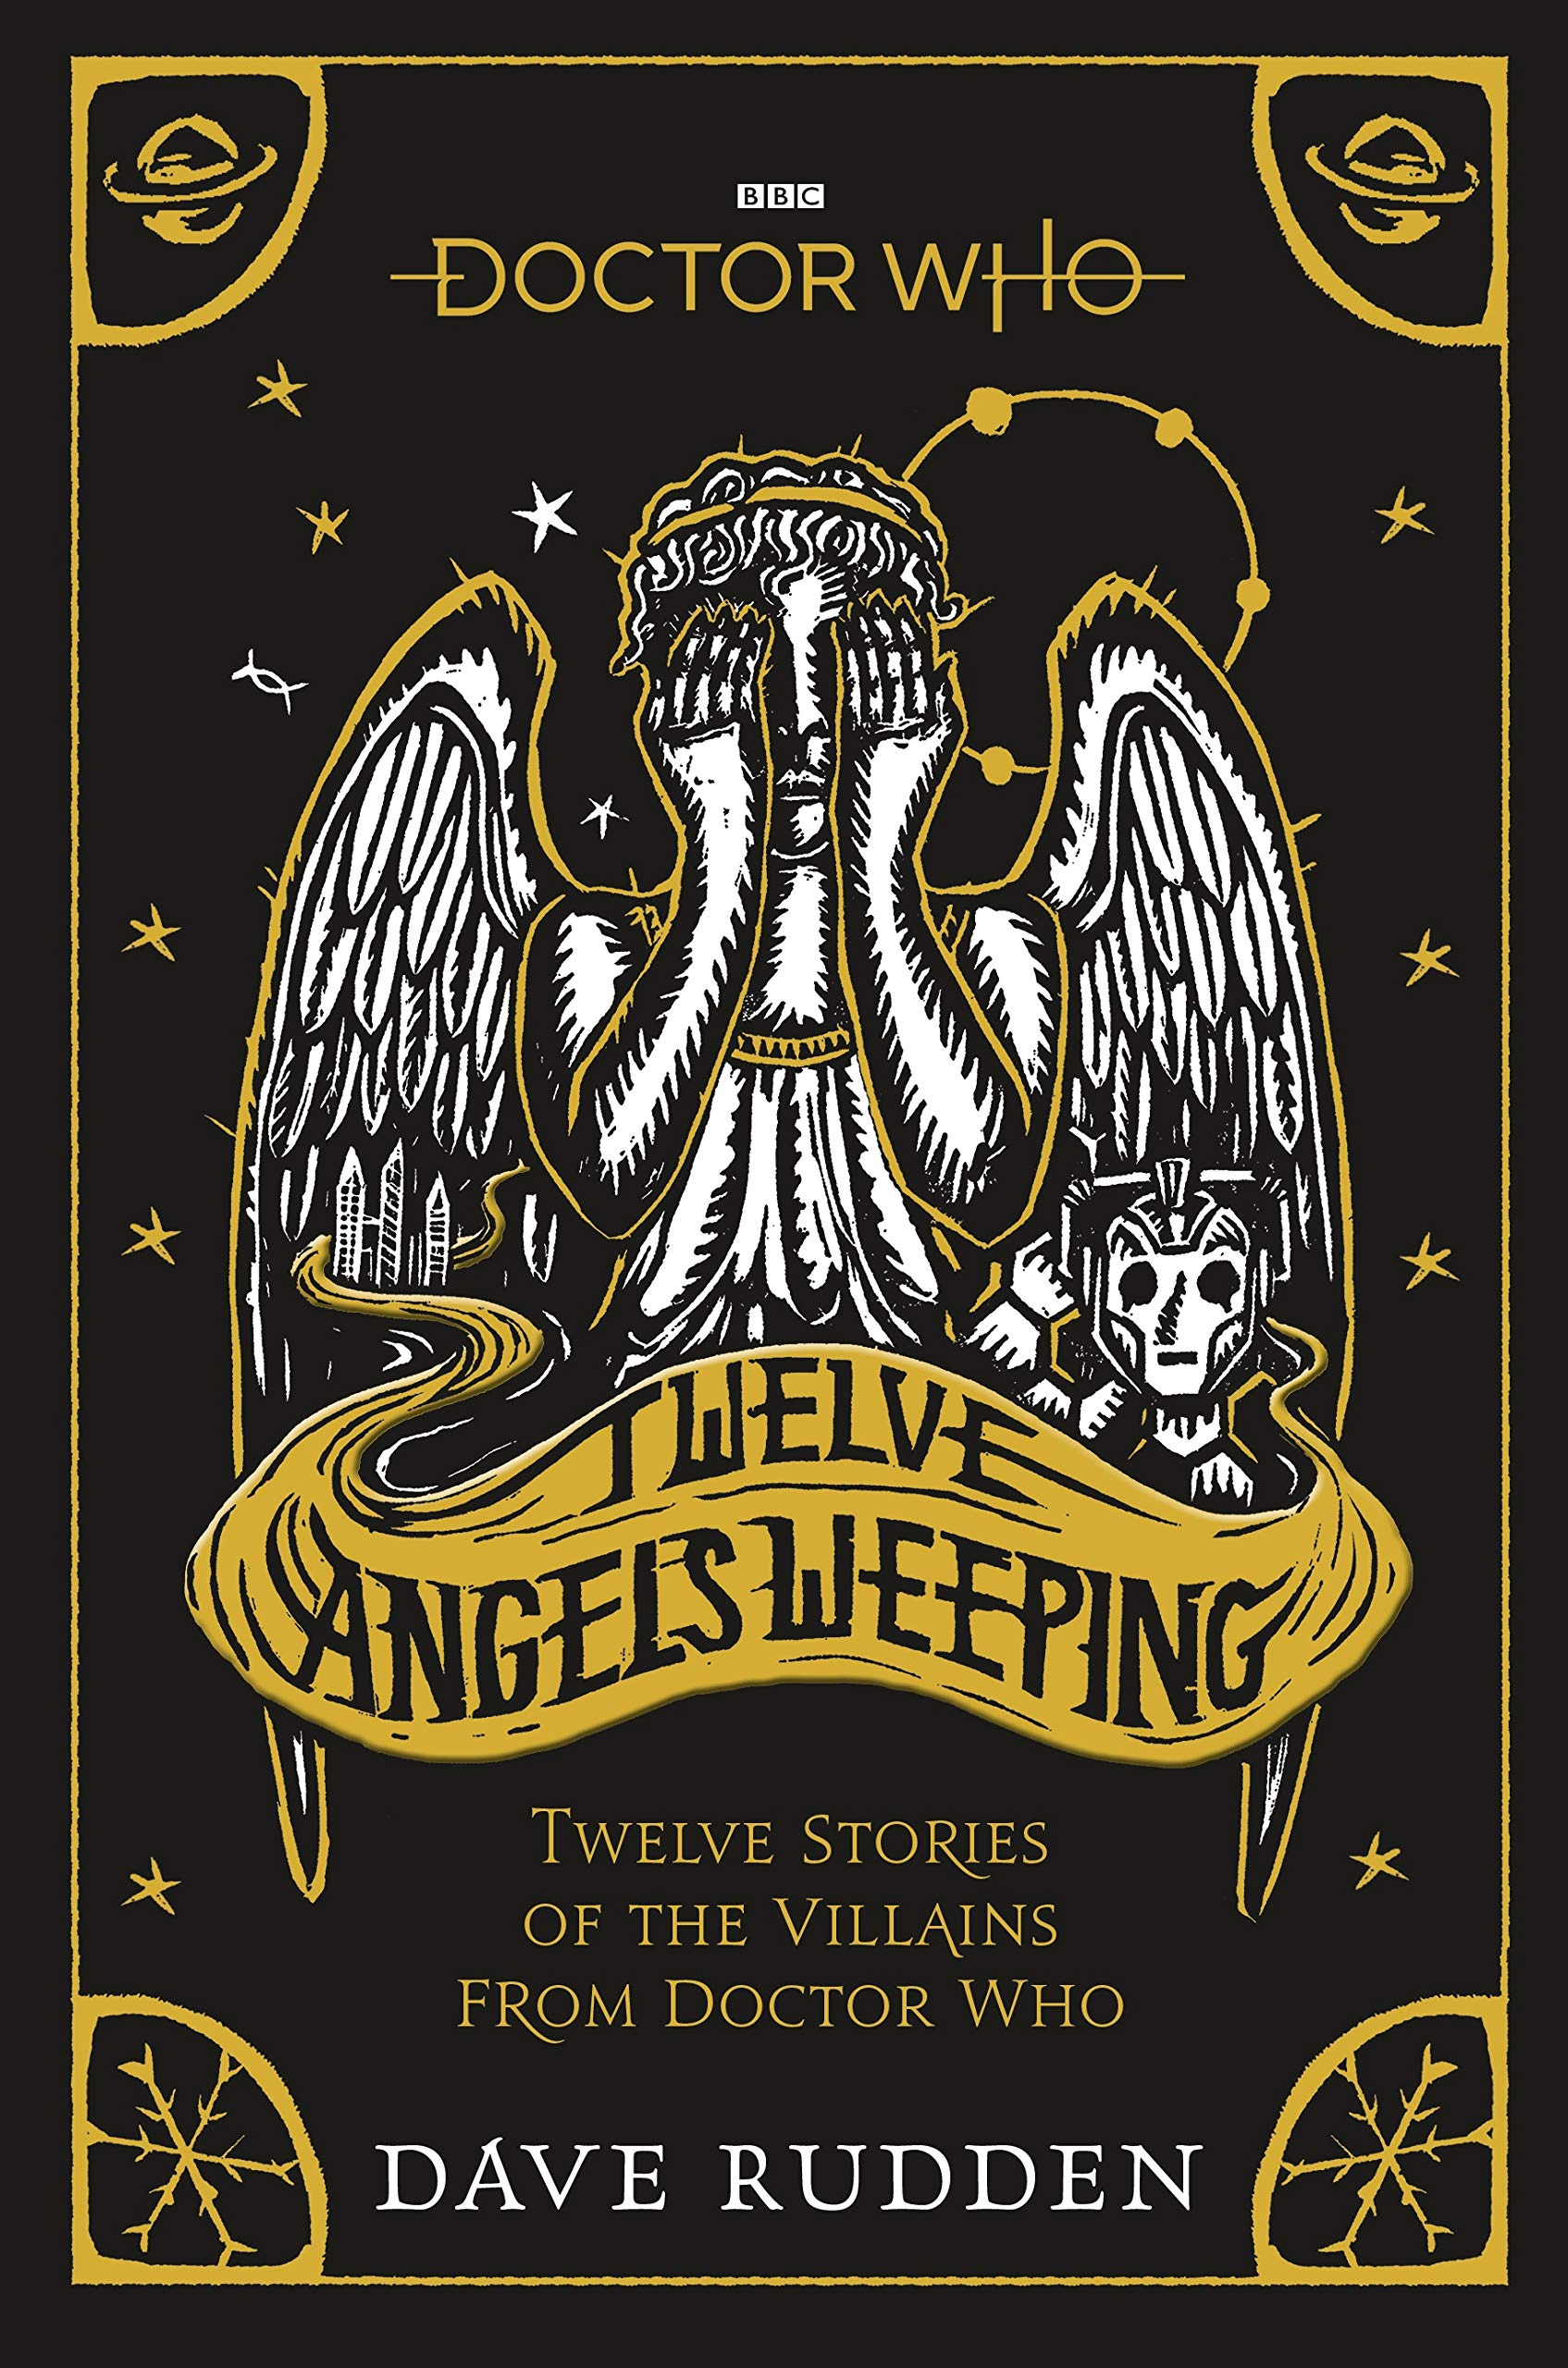 Doctor Who: Twelve Angels Weeping: Twelve tales of the villains from Doctor Who